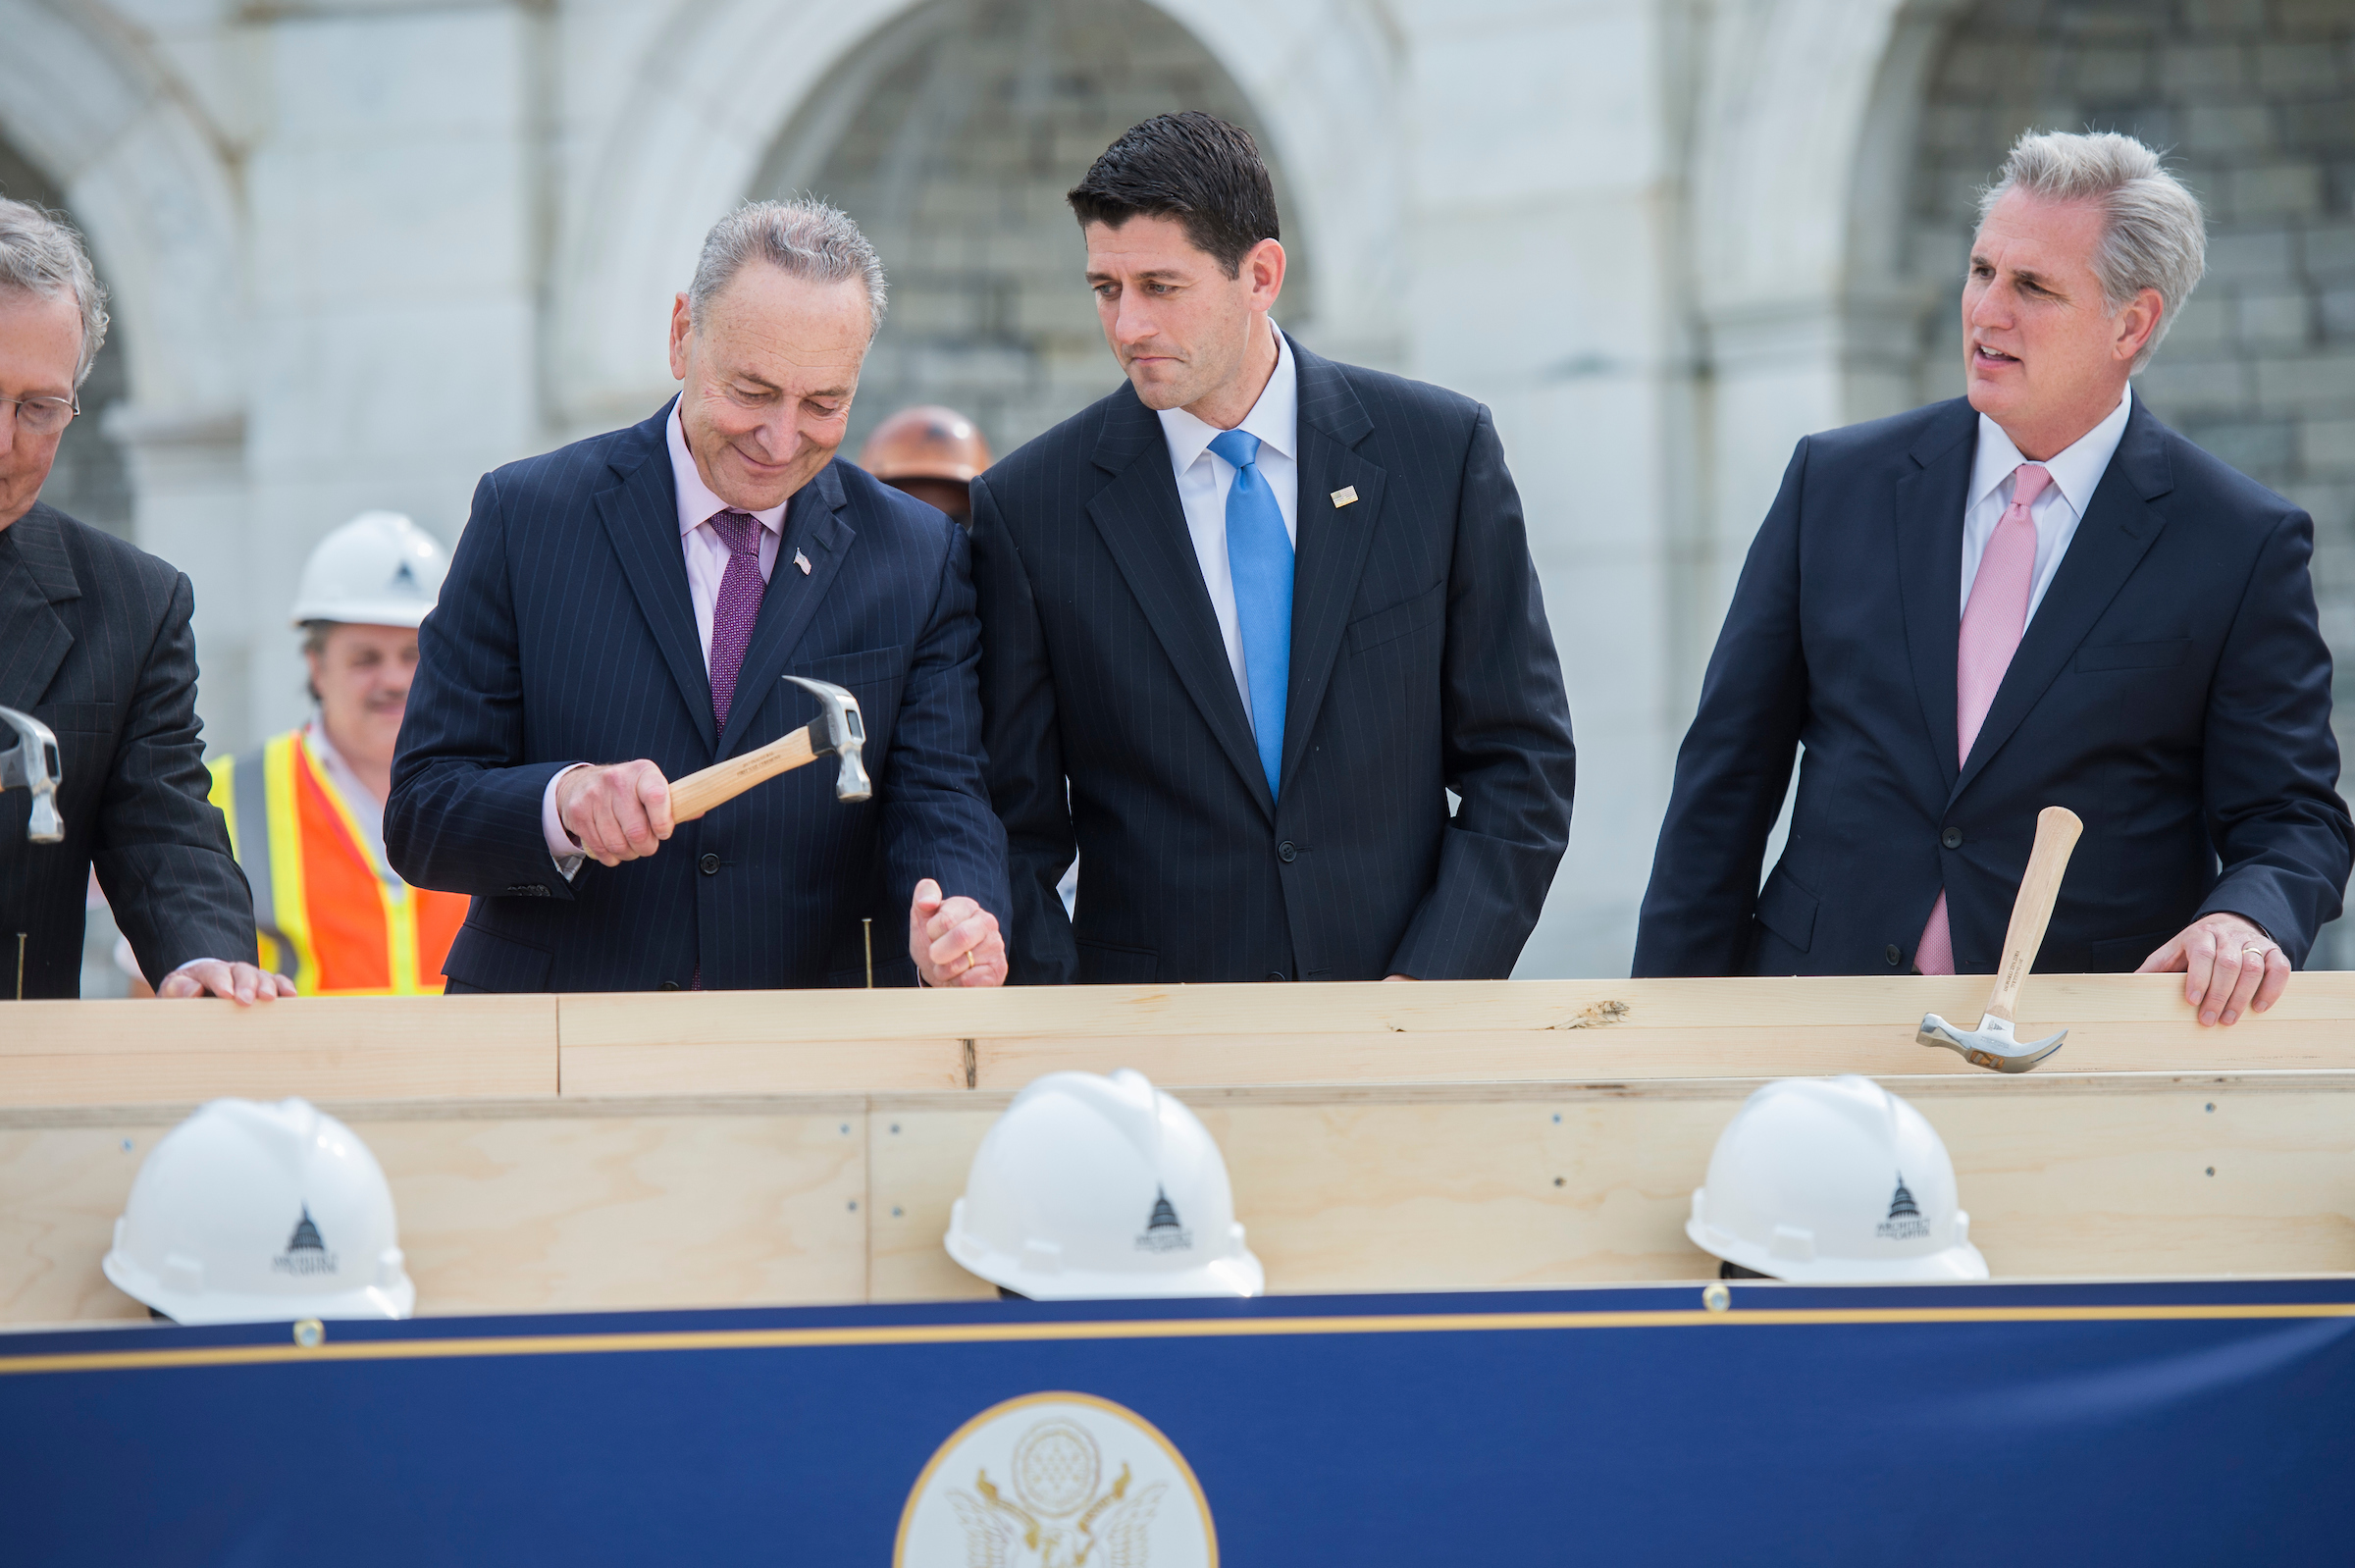 Ryan reacts to Schumer's technique. (Tom Williams/CQ Roll Call)